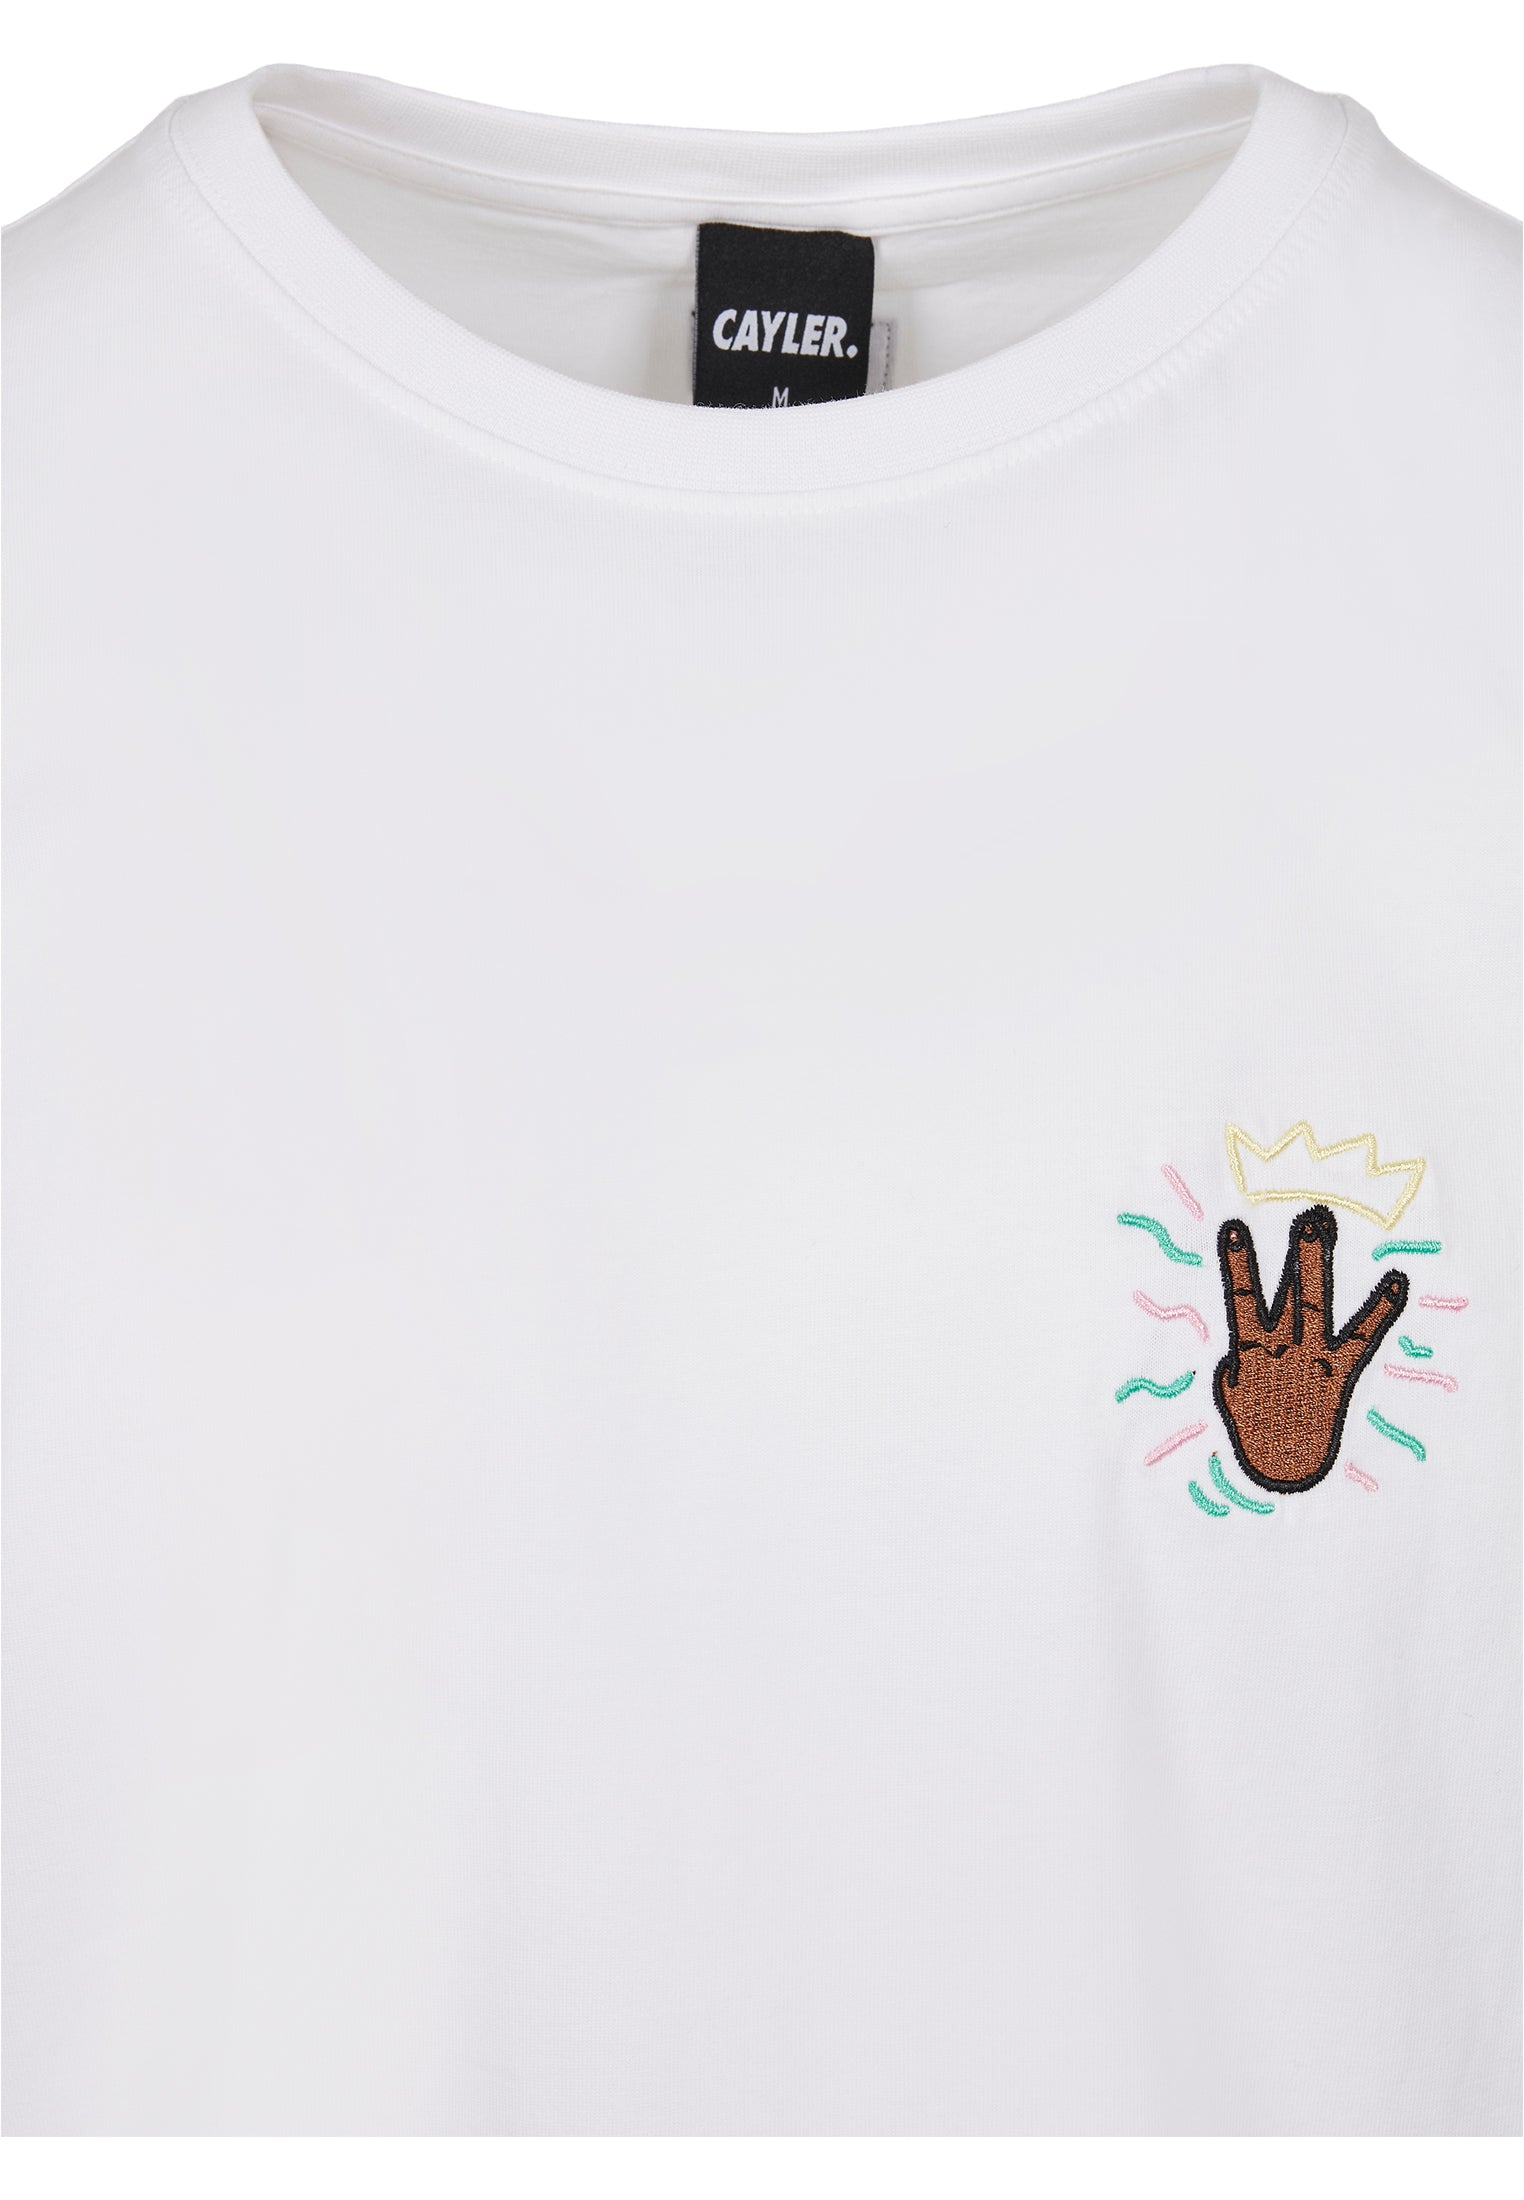 2Pac Lines Tee